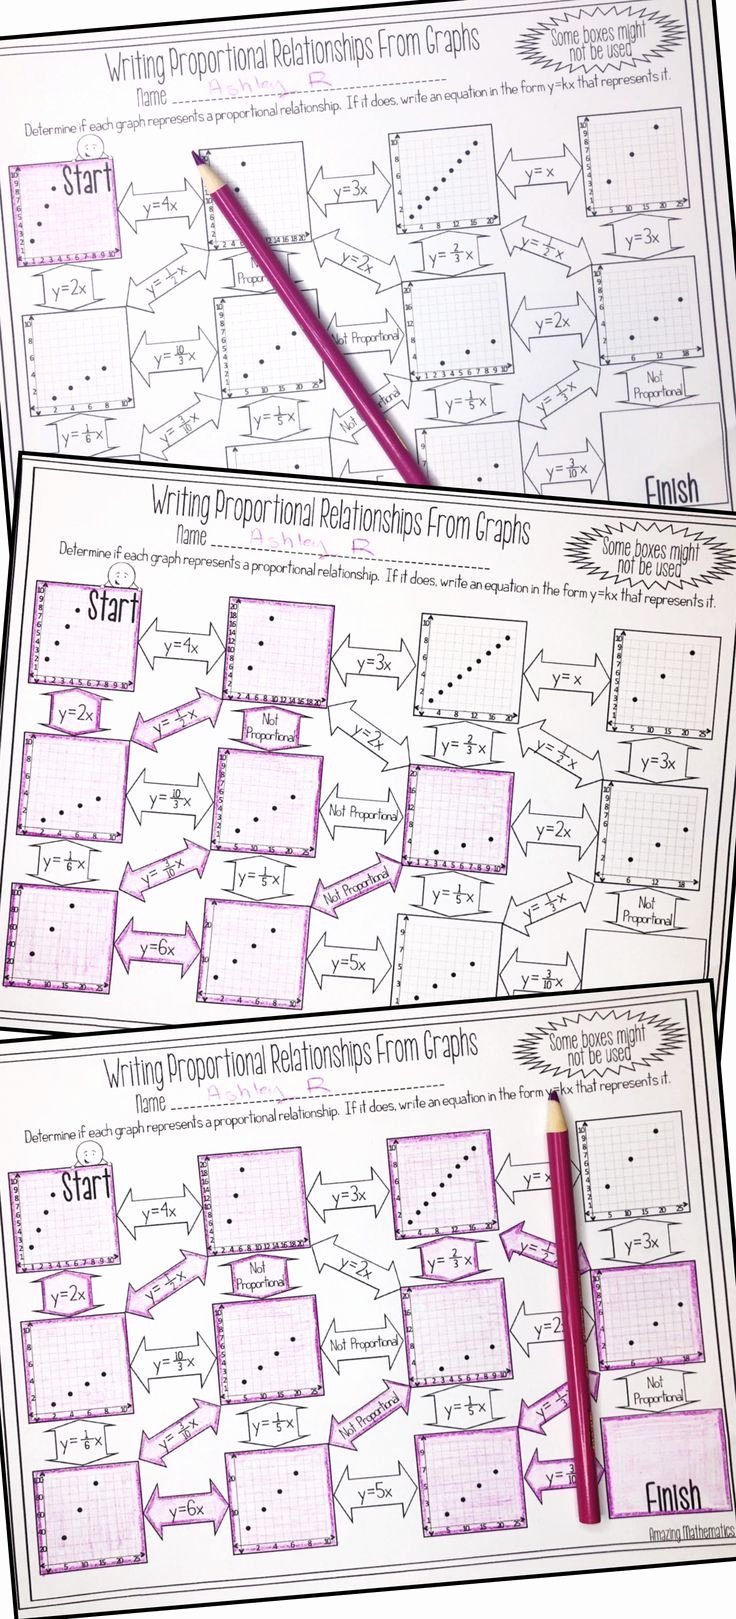 Proportional Relationship Worksheets 7th Grade Free This Writing Proportional Relationships From Graphs Was the